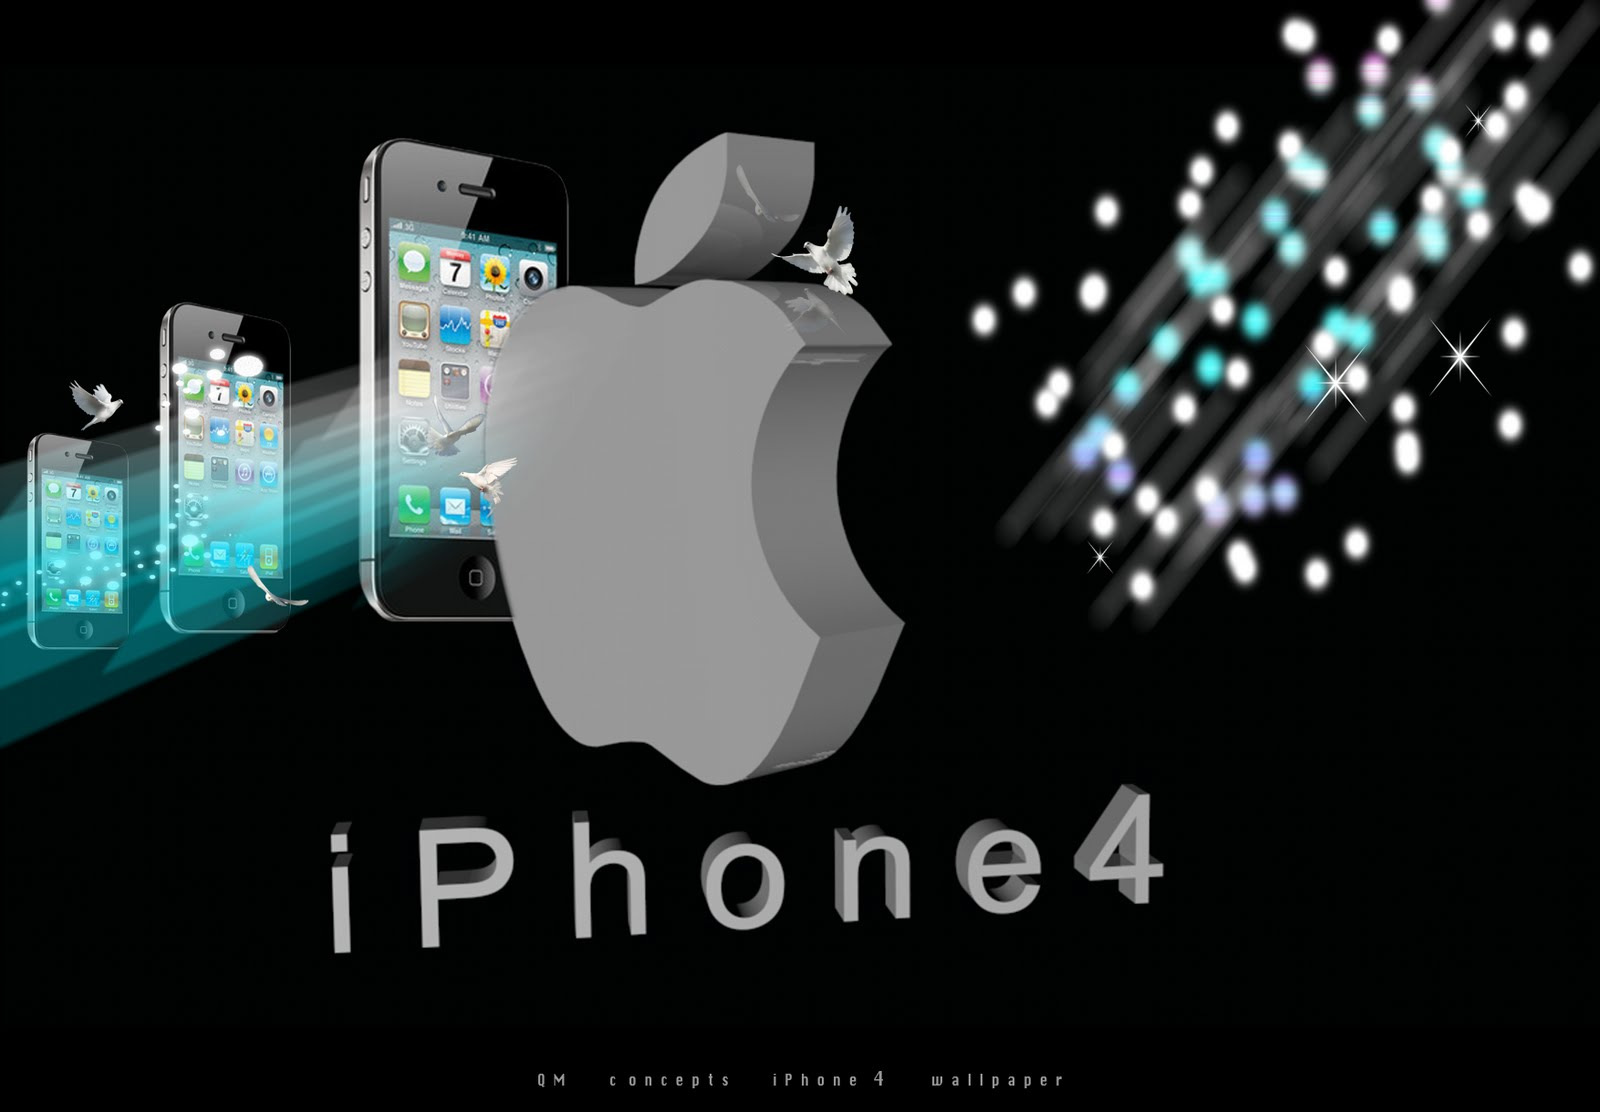 3D iPhone 4 wallpapers. | QM concepts ™